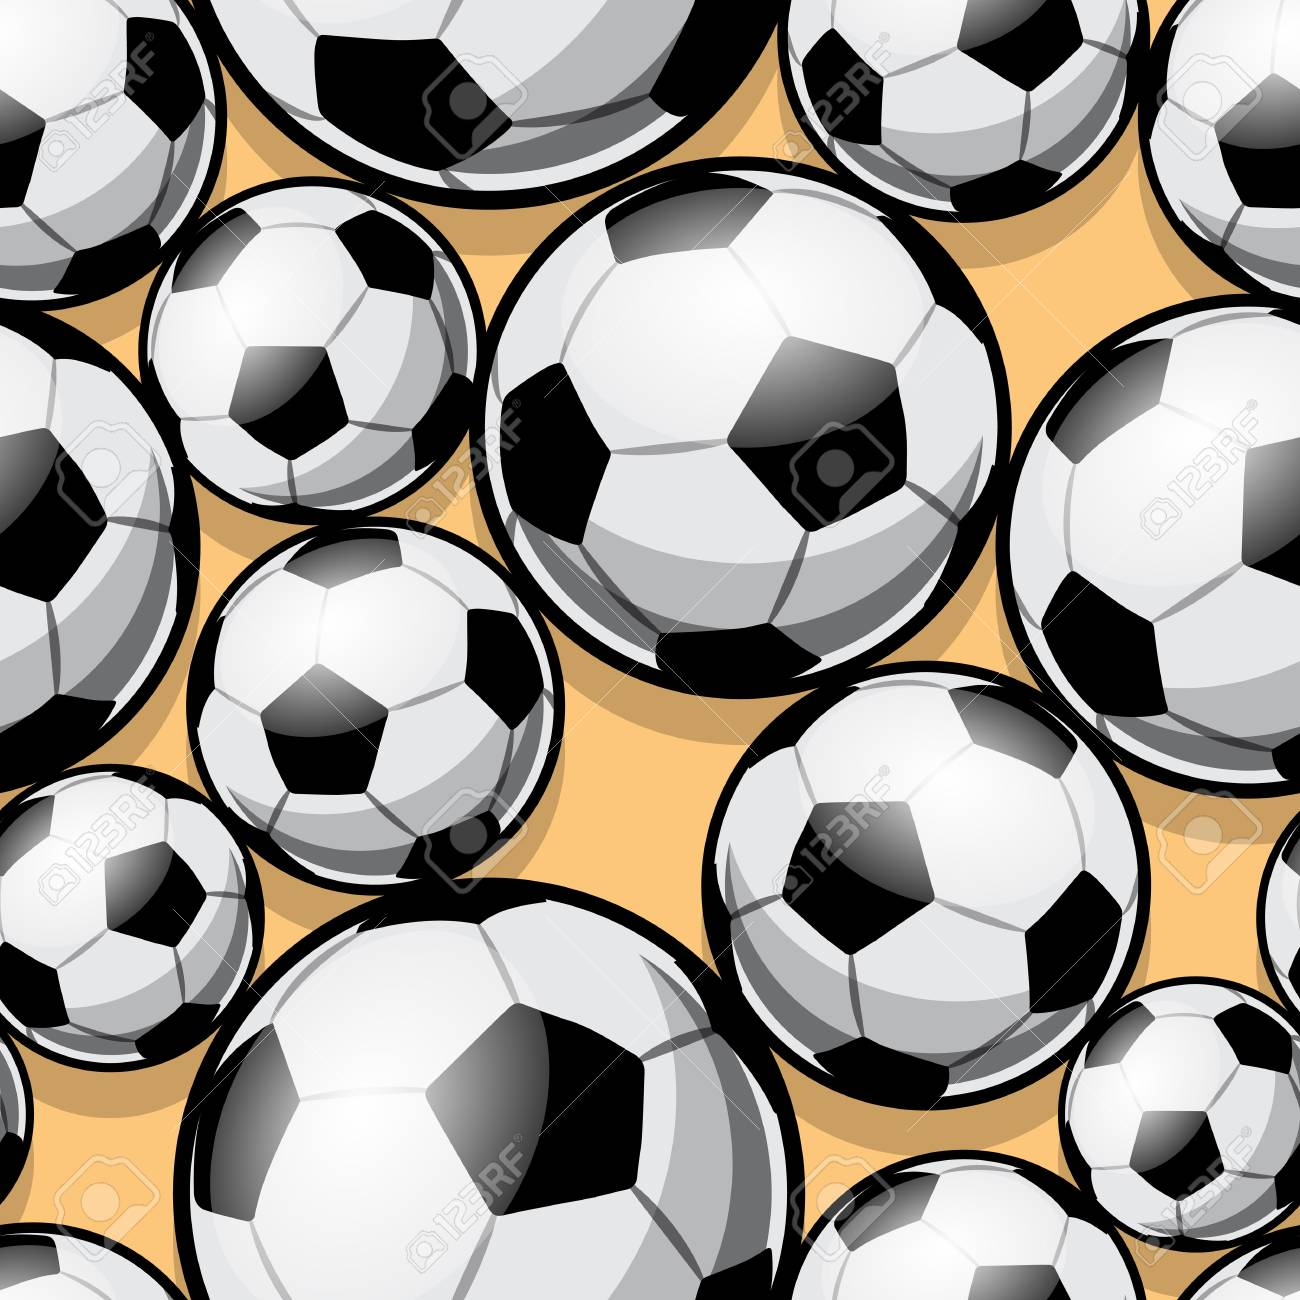 f11b5c197 Seamless pattern with football soccer ball. Vector illustration. Ideal for  wallpaper, cover,